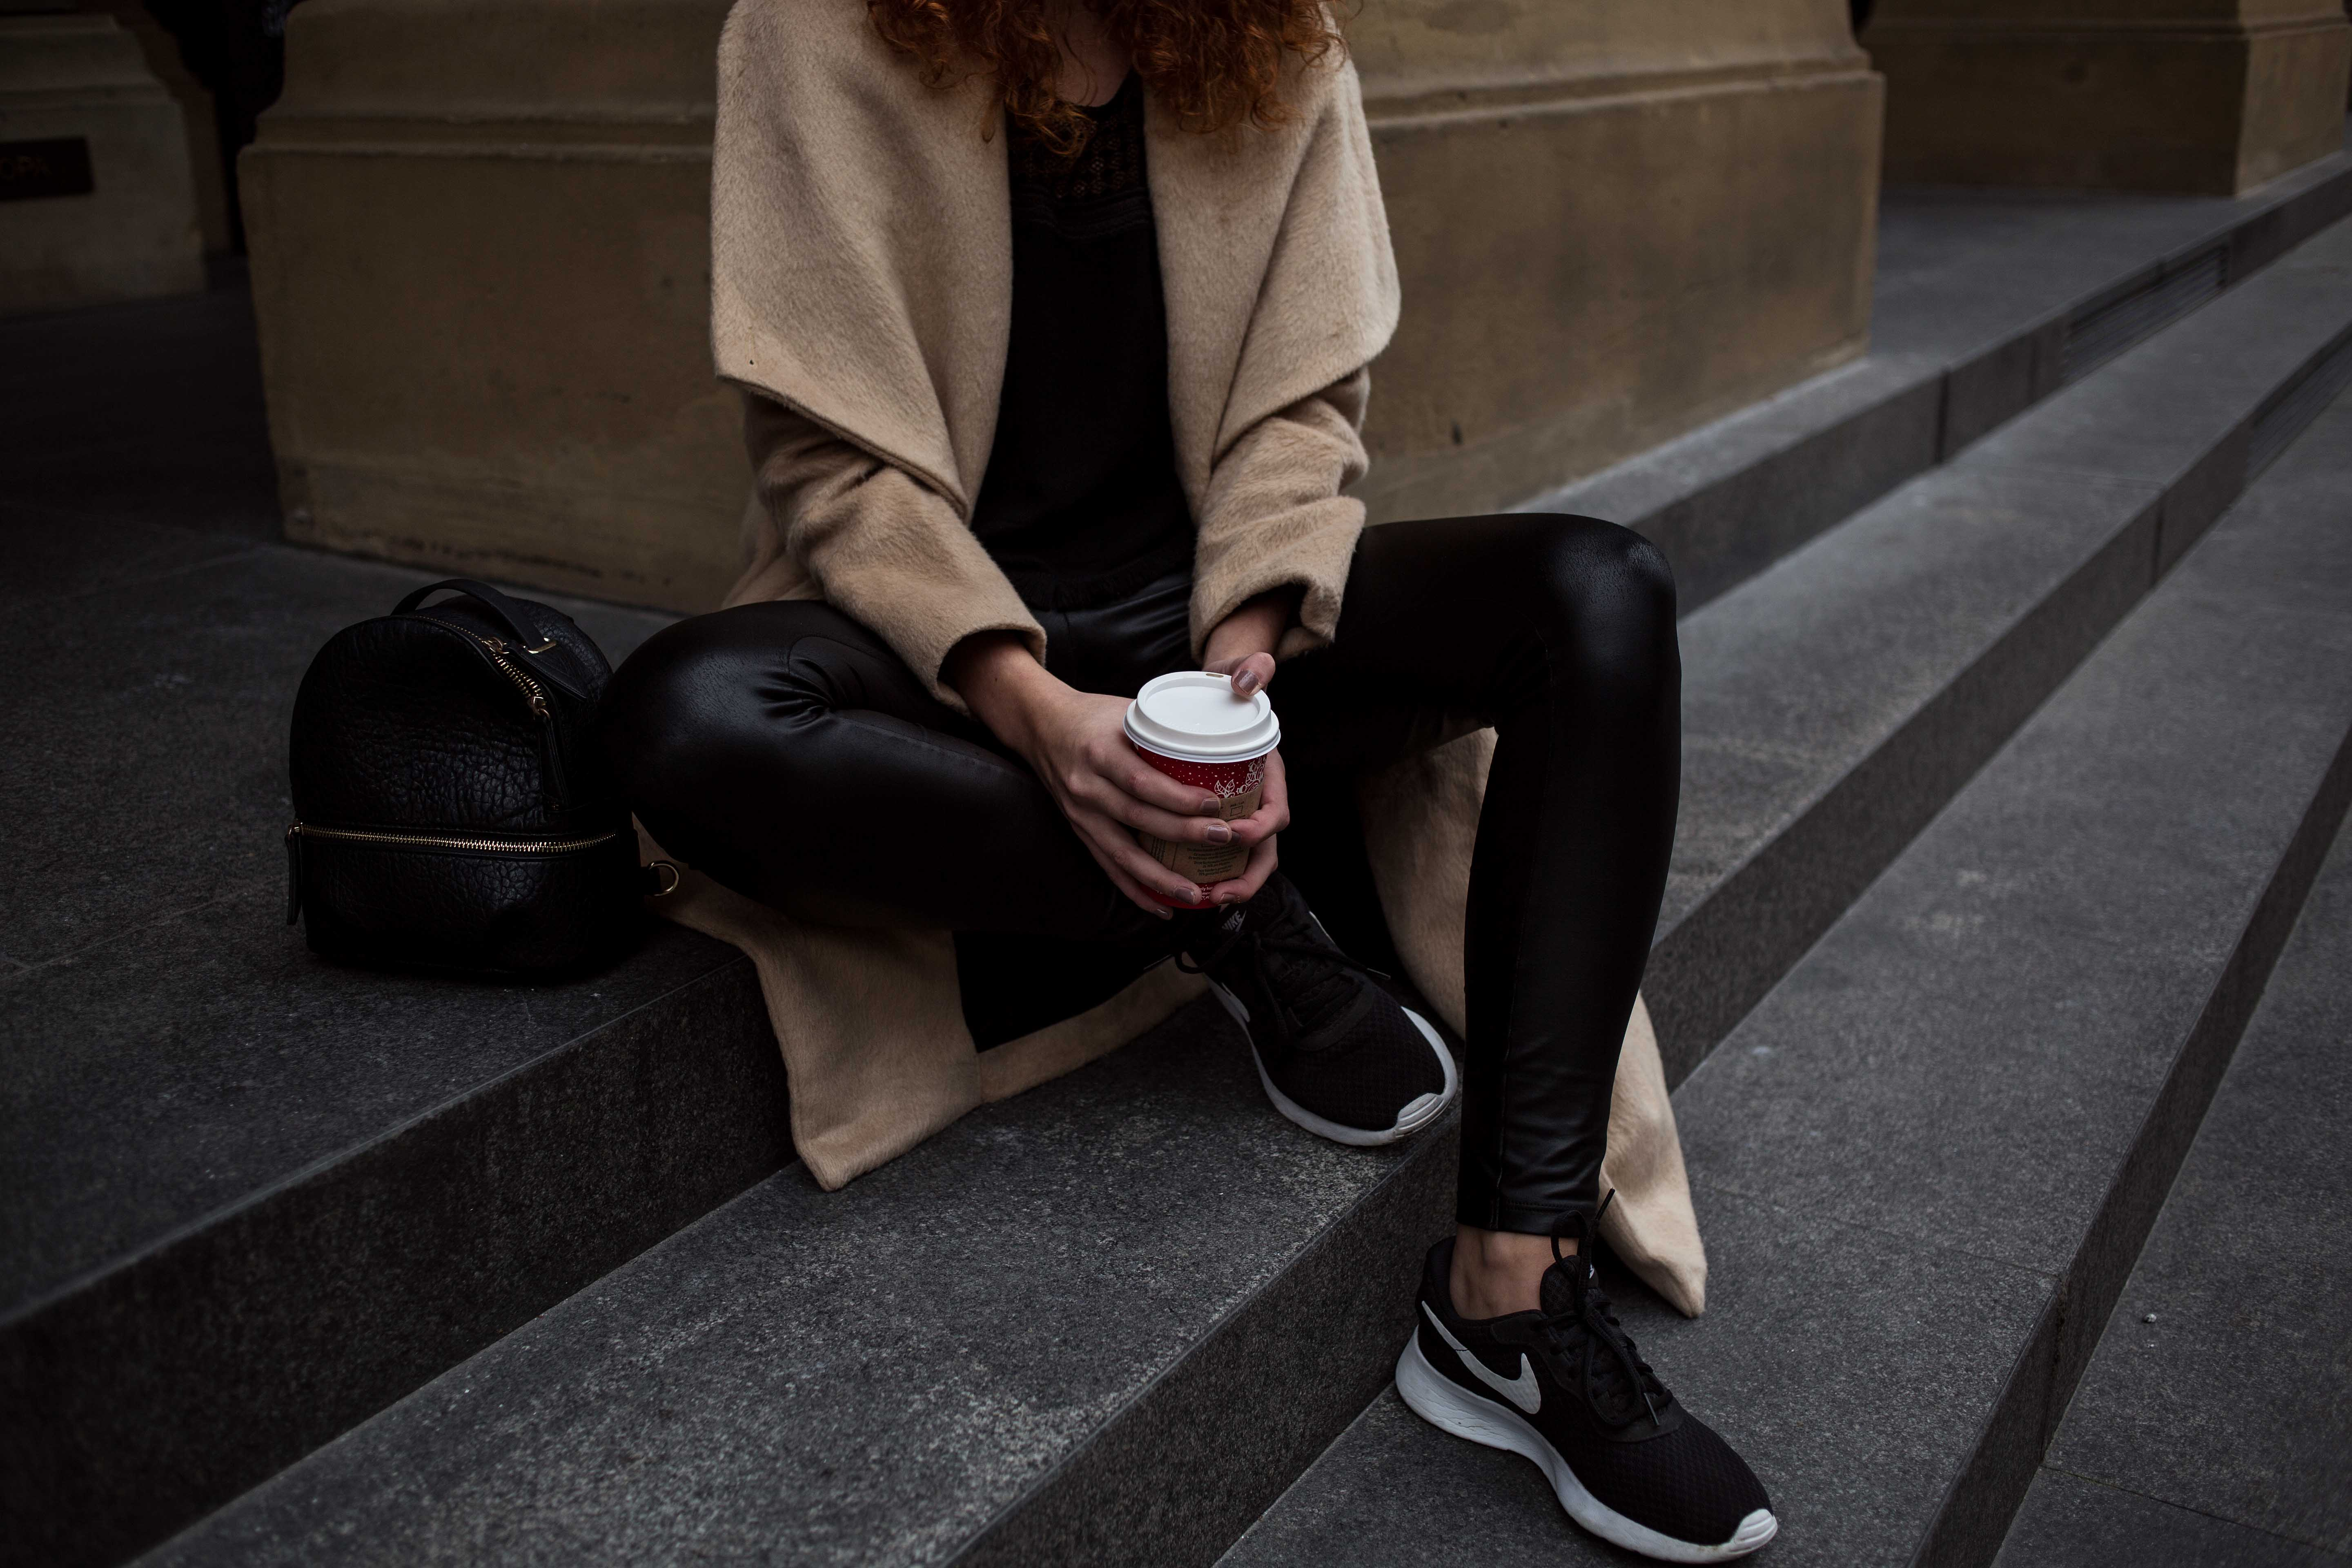 outfit blogger frankfurt ootd lookbook look thecurledgirl the curled girl autumn inspiration herbst winter camel coat edgy nike sneaker boots pullover layering asos curls ffm mode fashion frankfurt